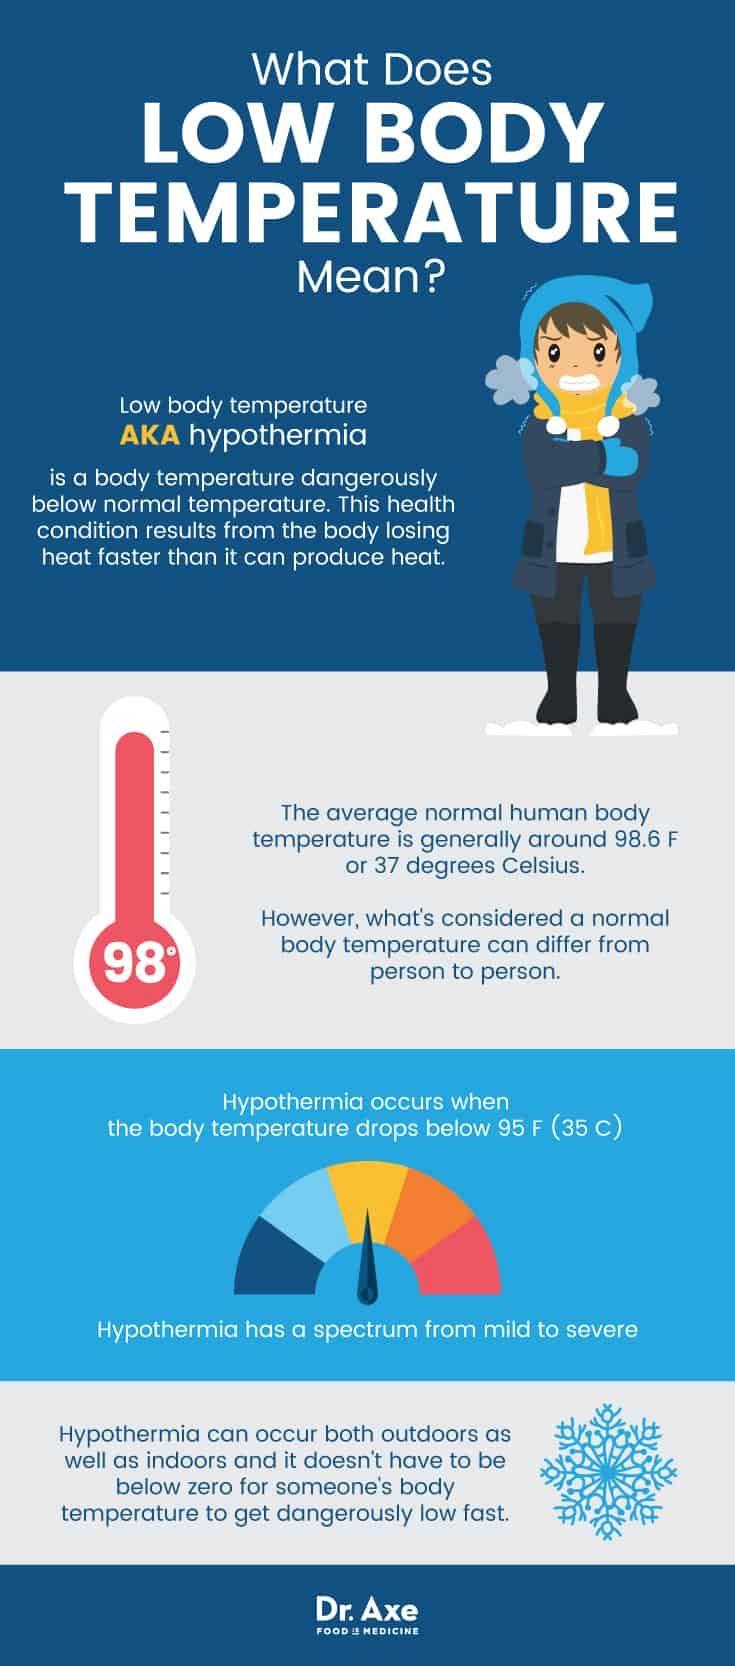 What are the reasons for lowering body temperature below normal to 35 degrees